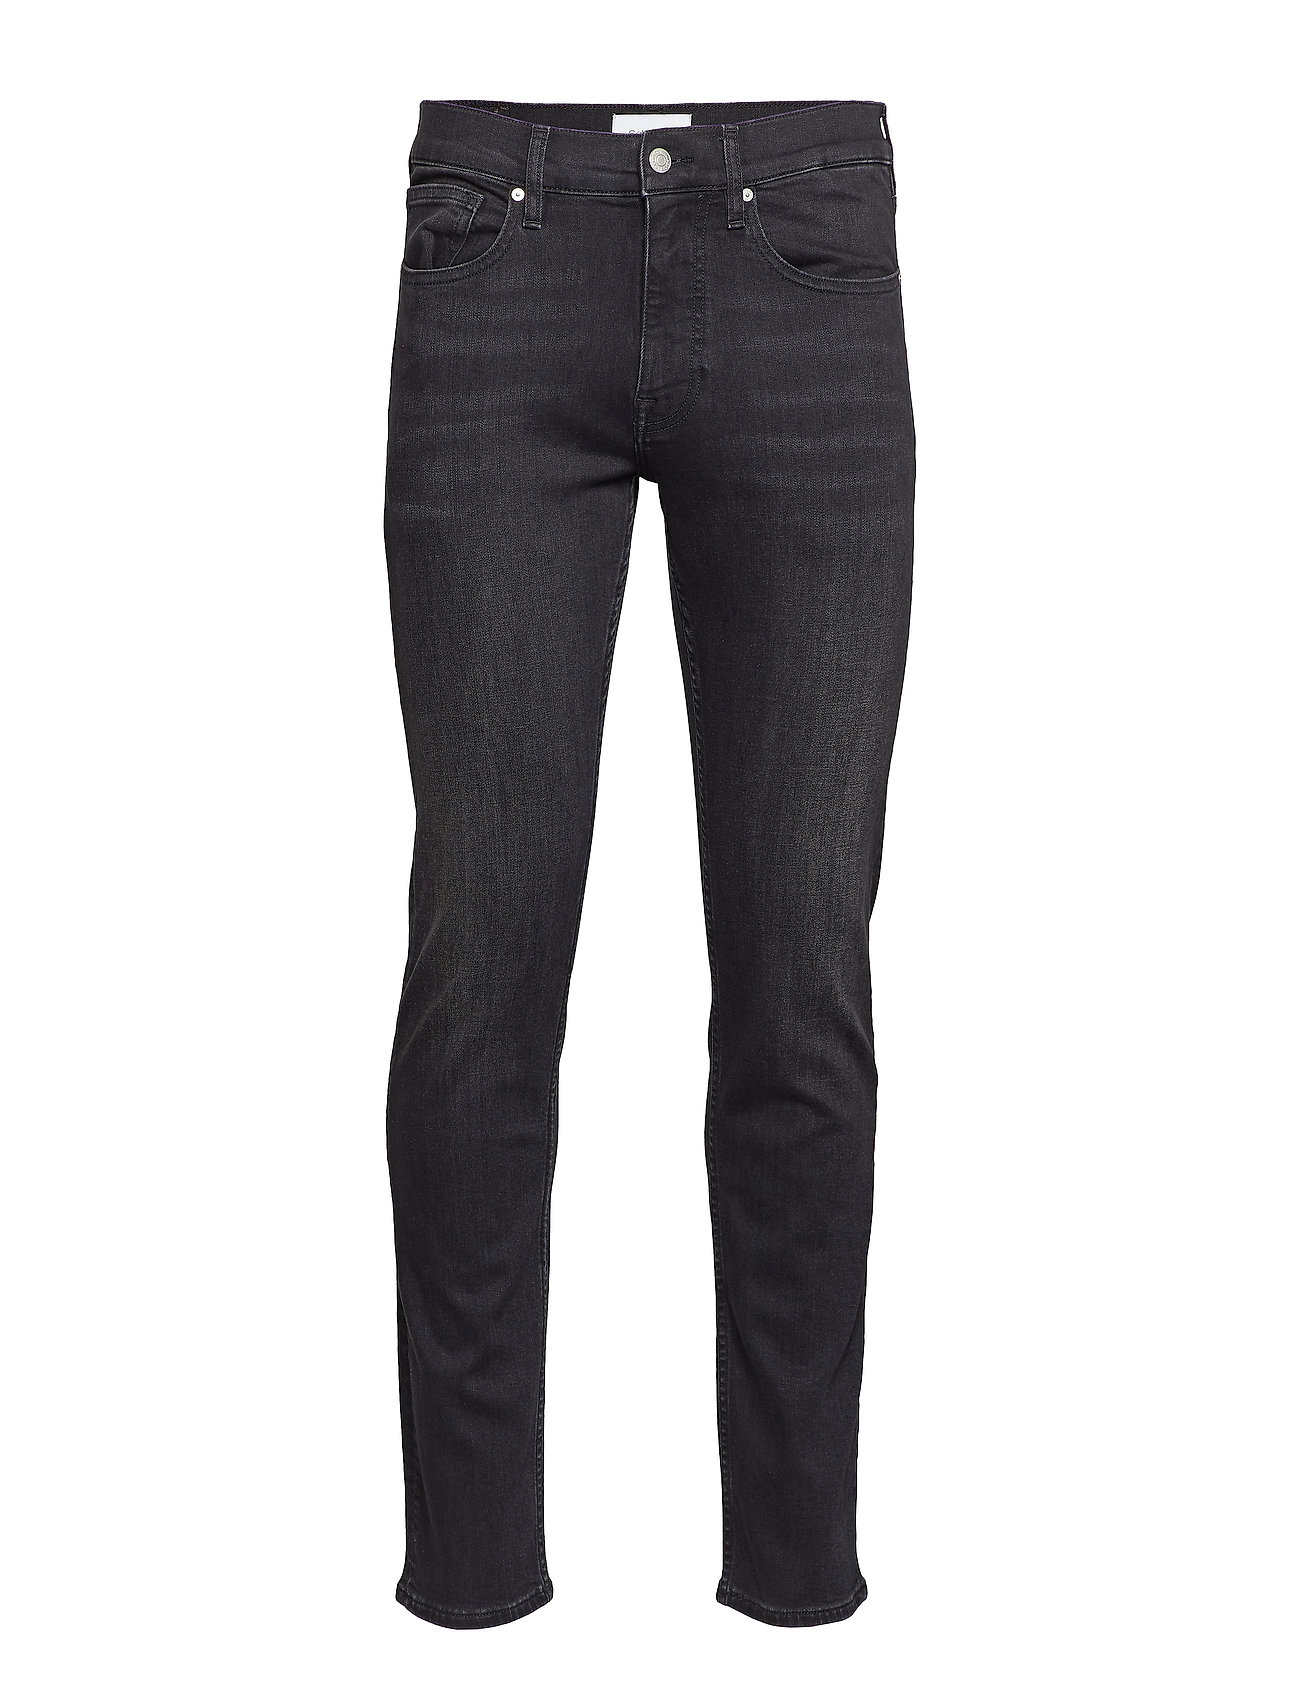 Calvin Klein SLIM STRETCH DENIM M - MELROSE WASHED BLACK